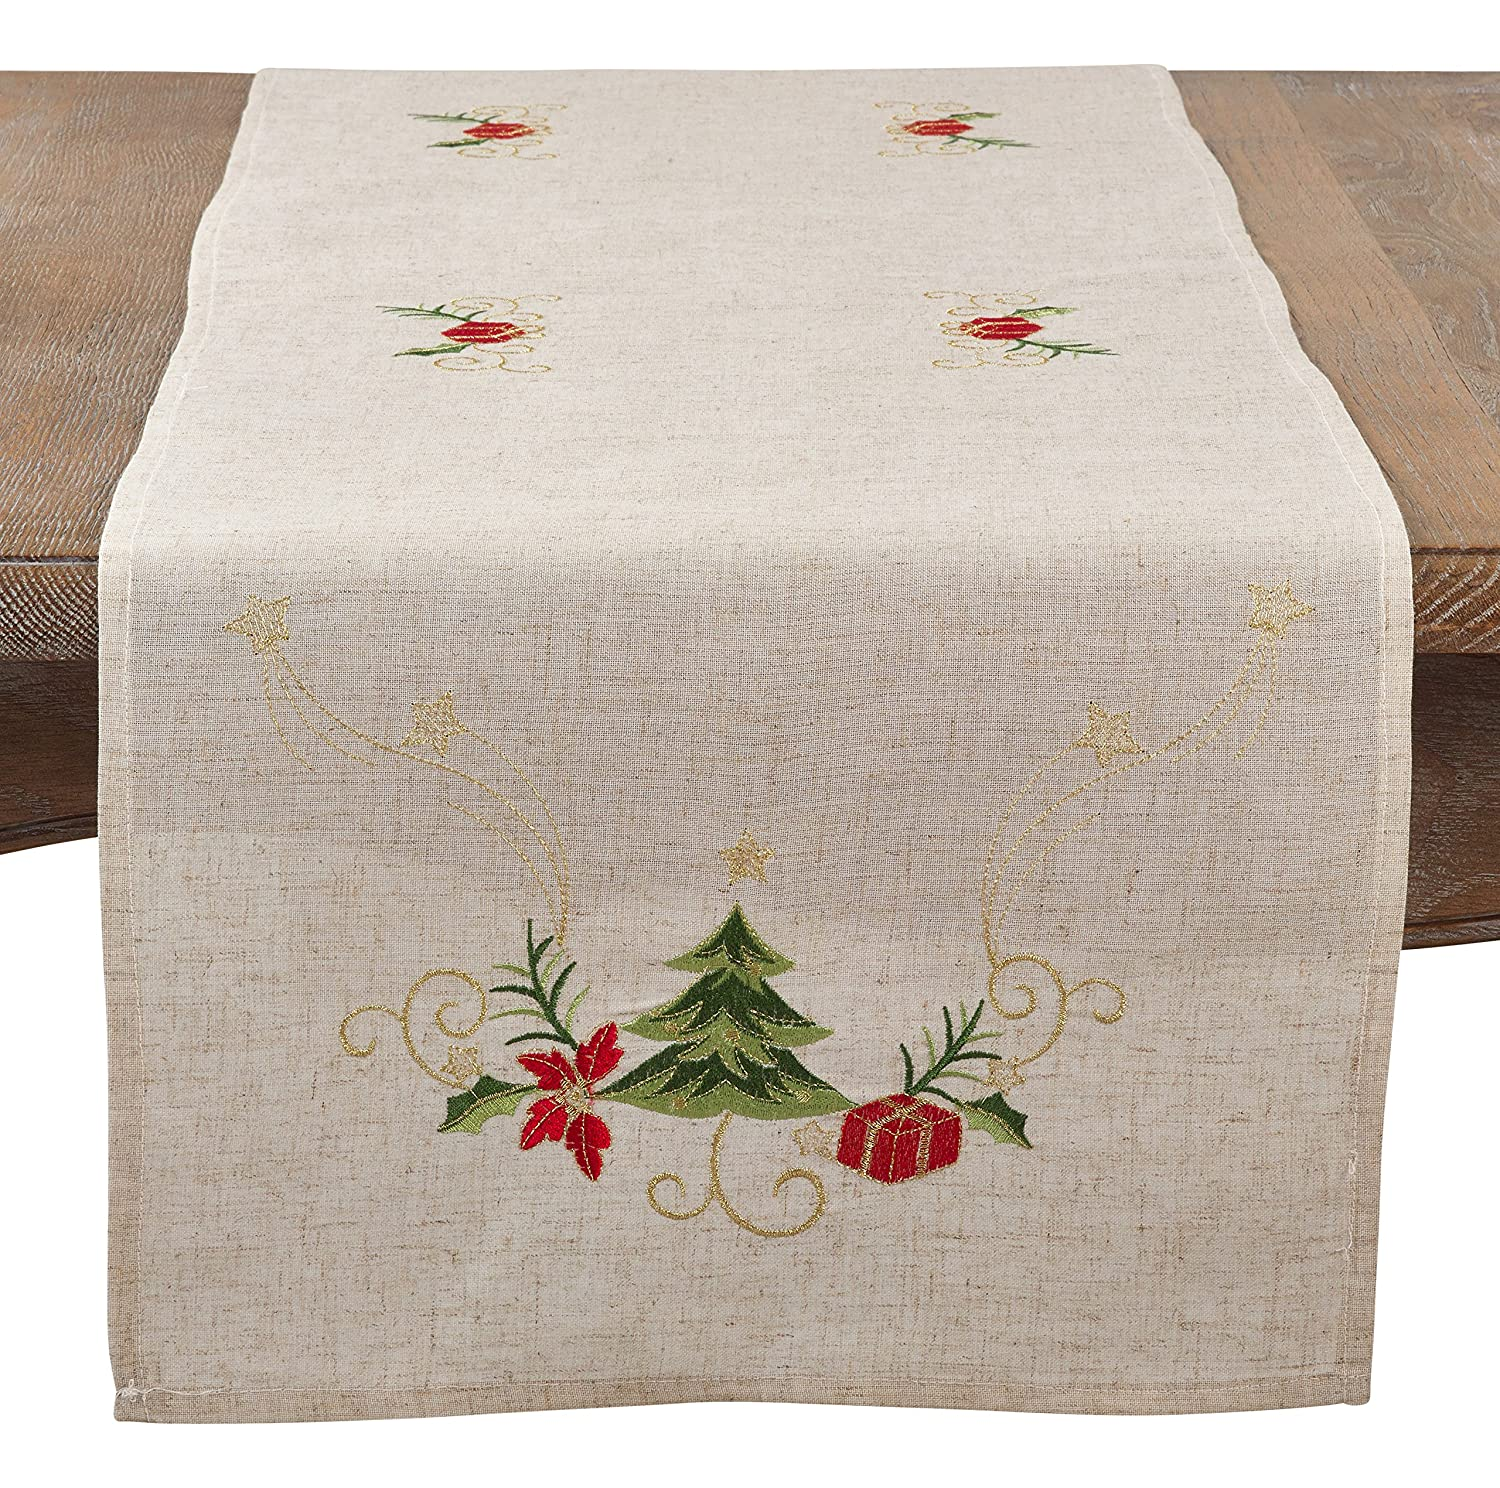 16 x 72 SARO LIFESTYLE Embroidered Christmas Tree Design Linen Blend Table Runner Natural